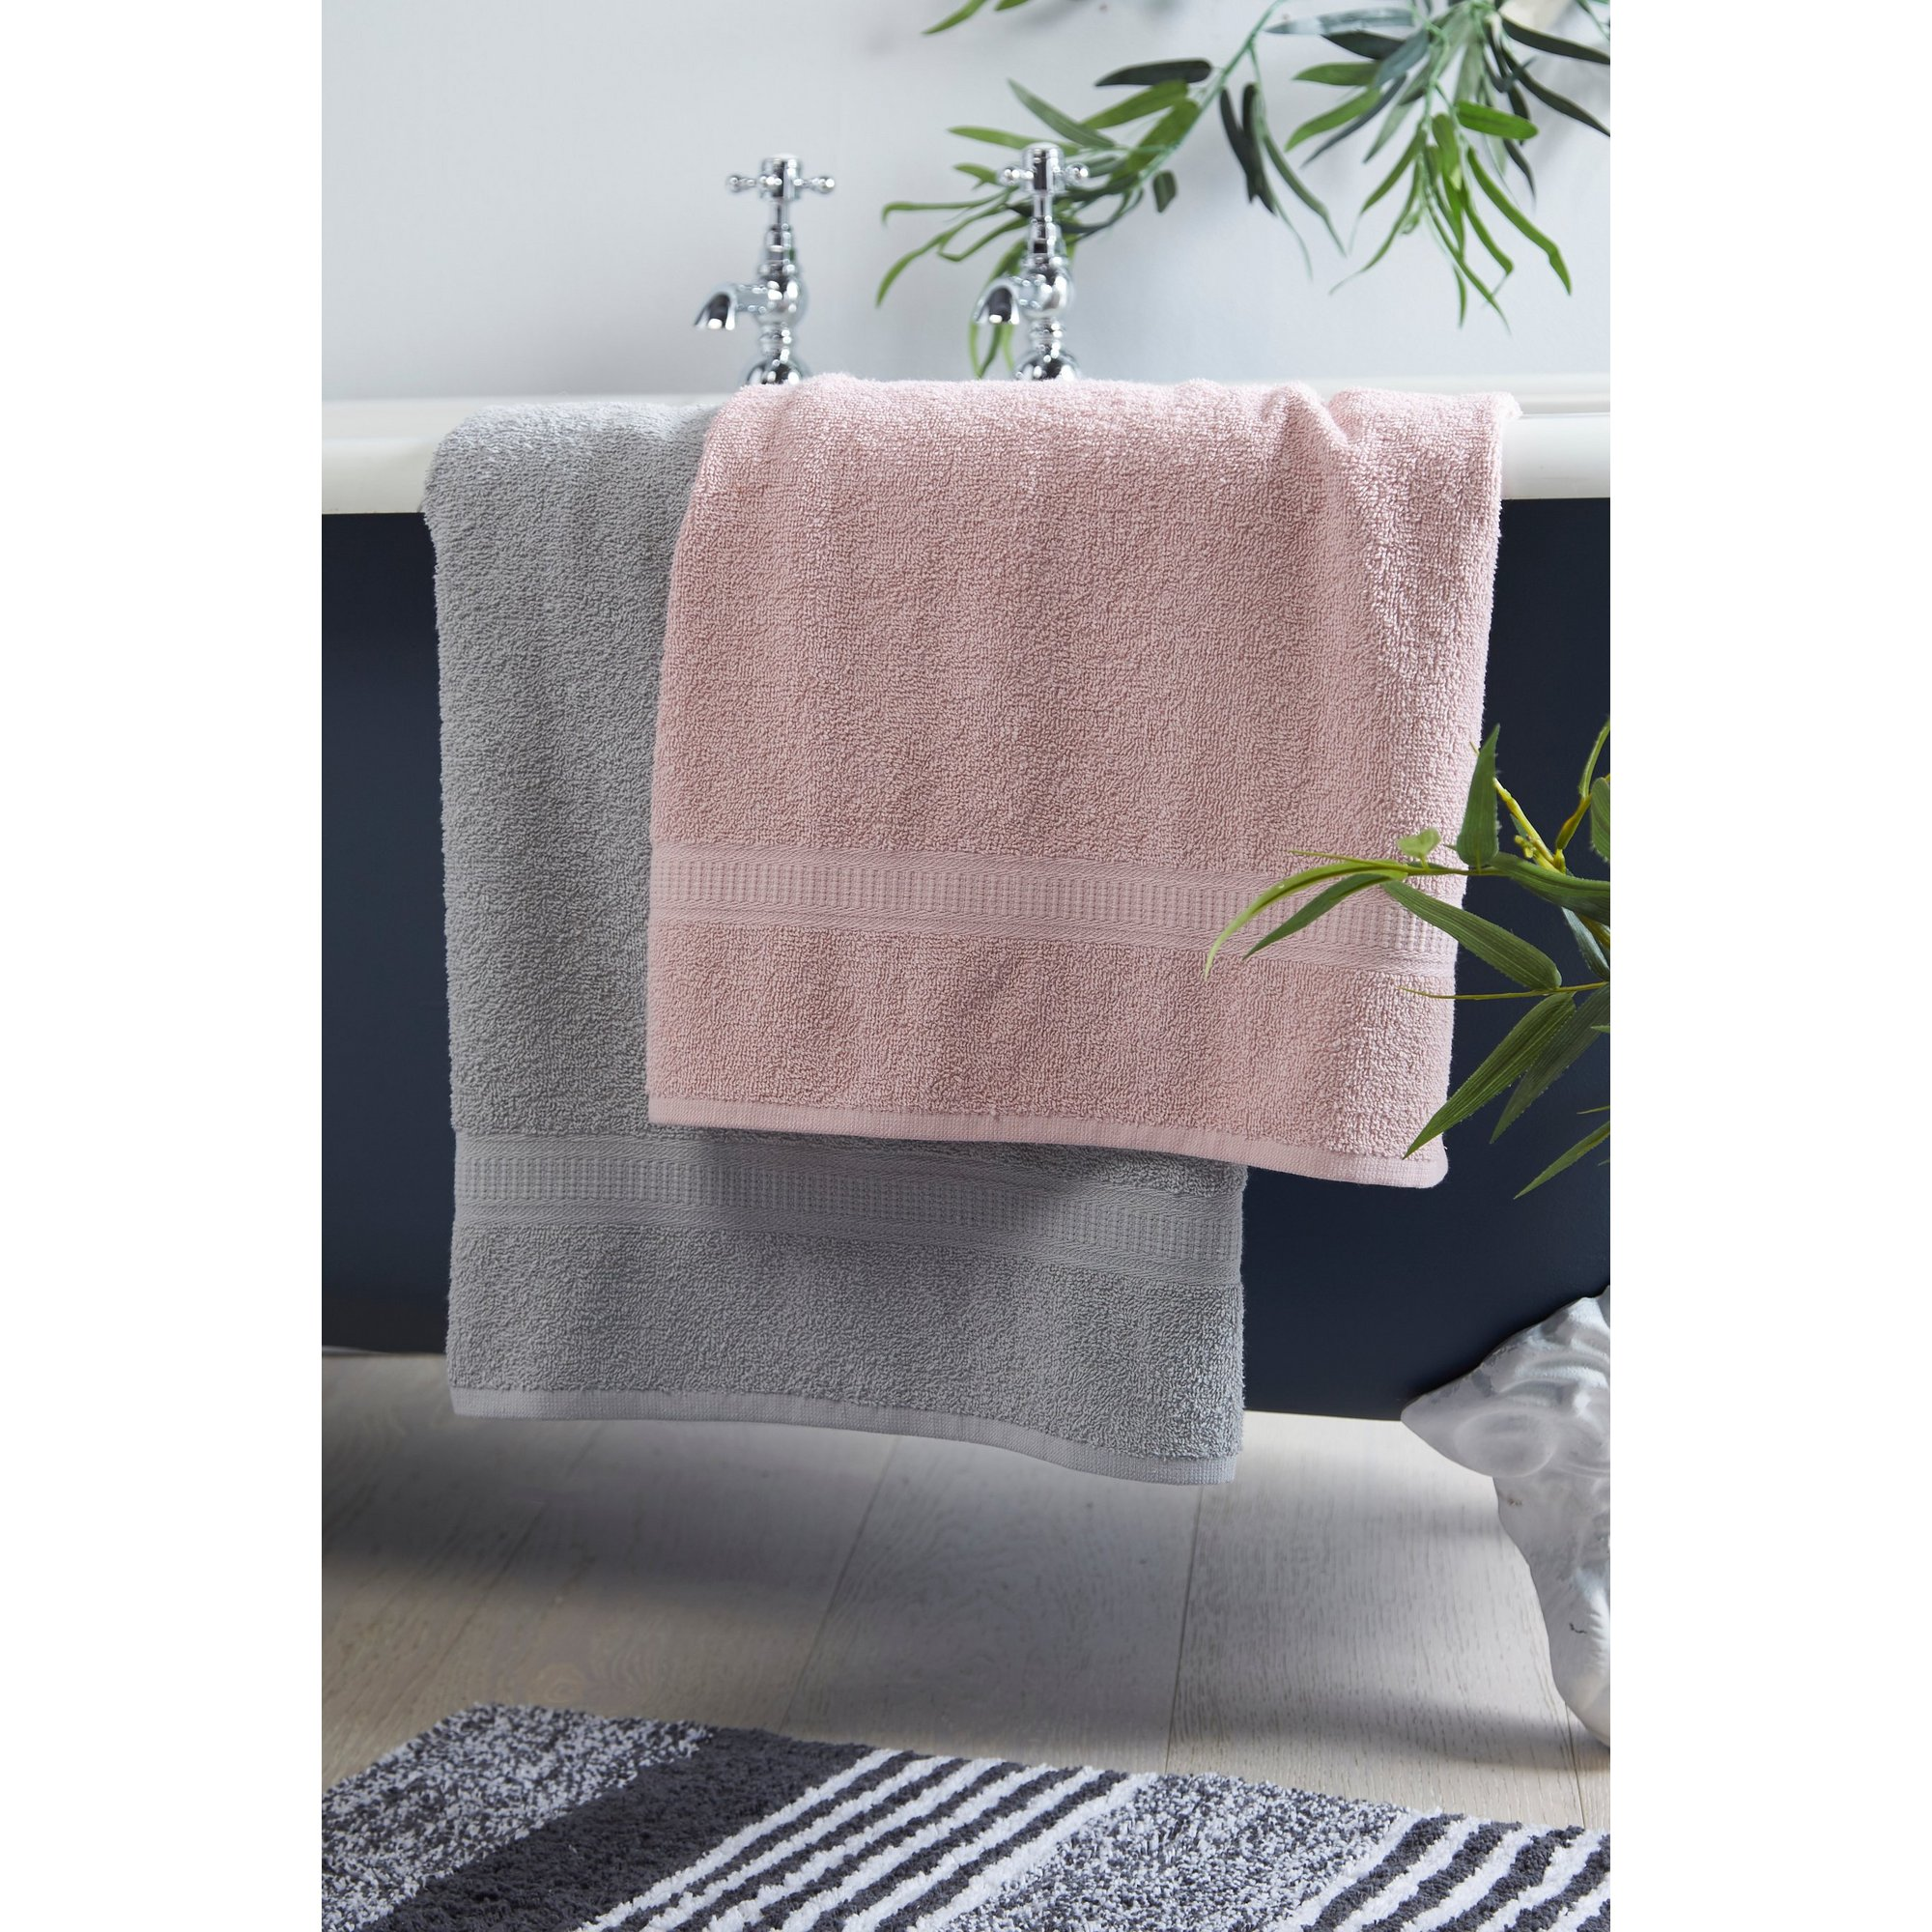 Image of 8-Piece Grey and Blush Pink Duo Towel Bale